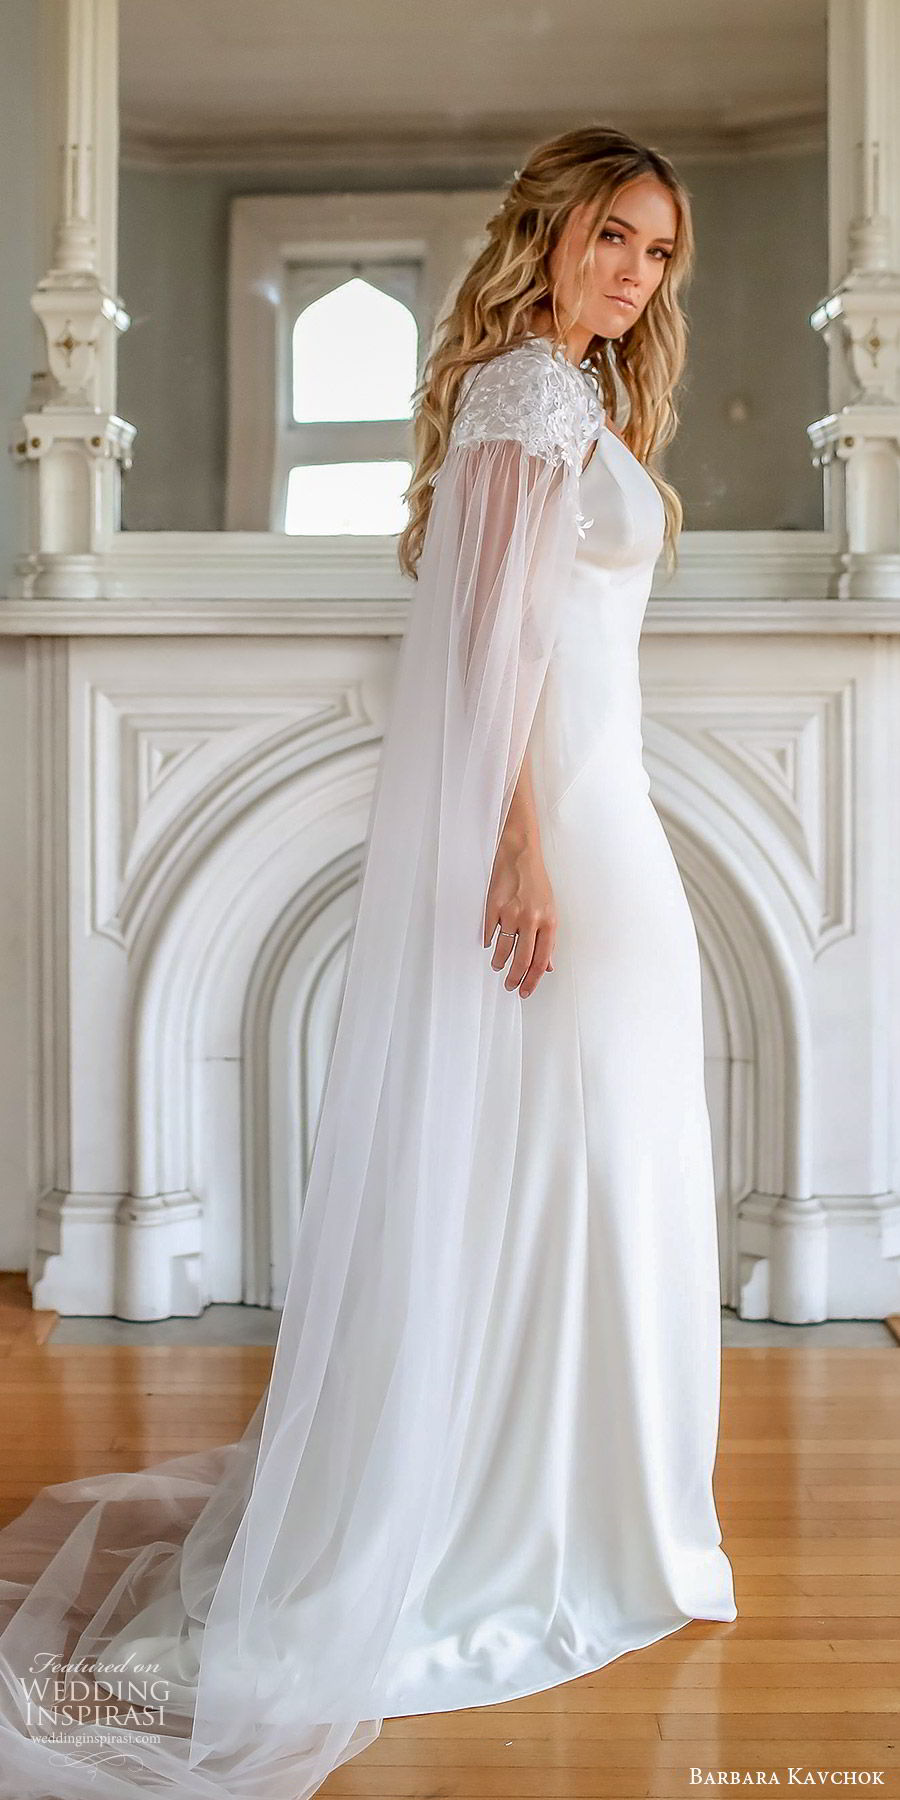 barbara kavchok fall 2019 bridal sleeveless thin straps sweetheart neckline sheath wedding dress (3) sv sheer cape illusion cutout back chapel train minimal chic modern romantic